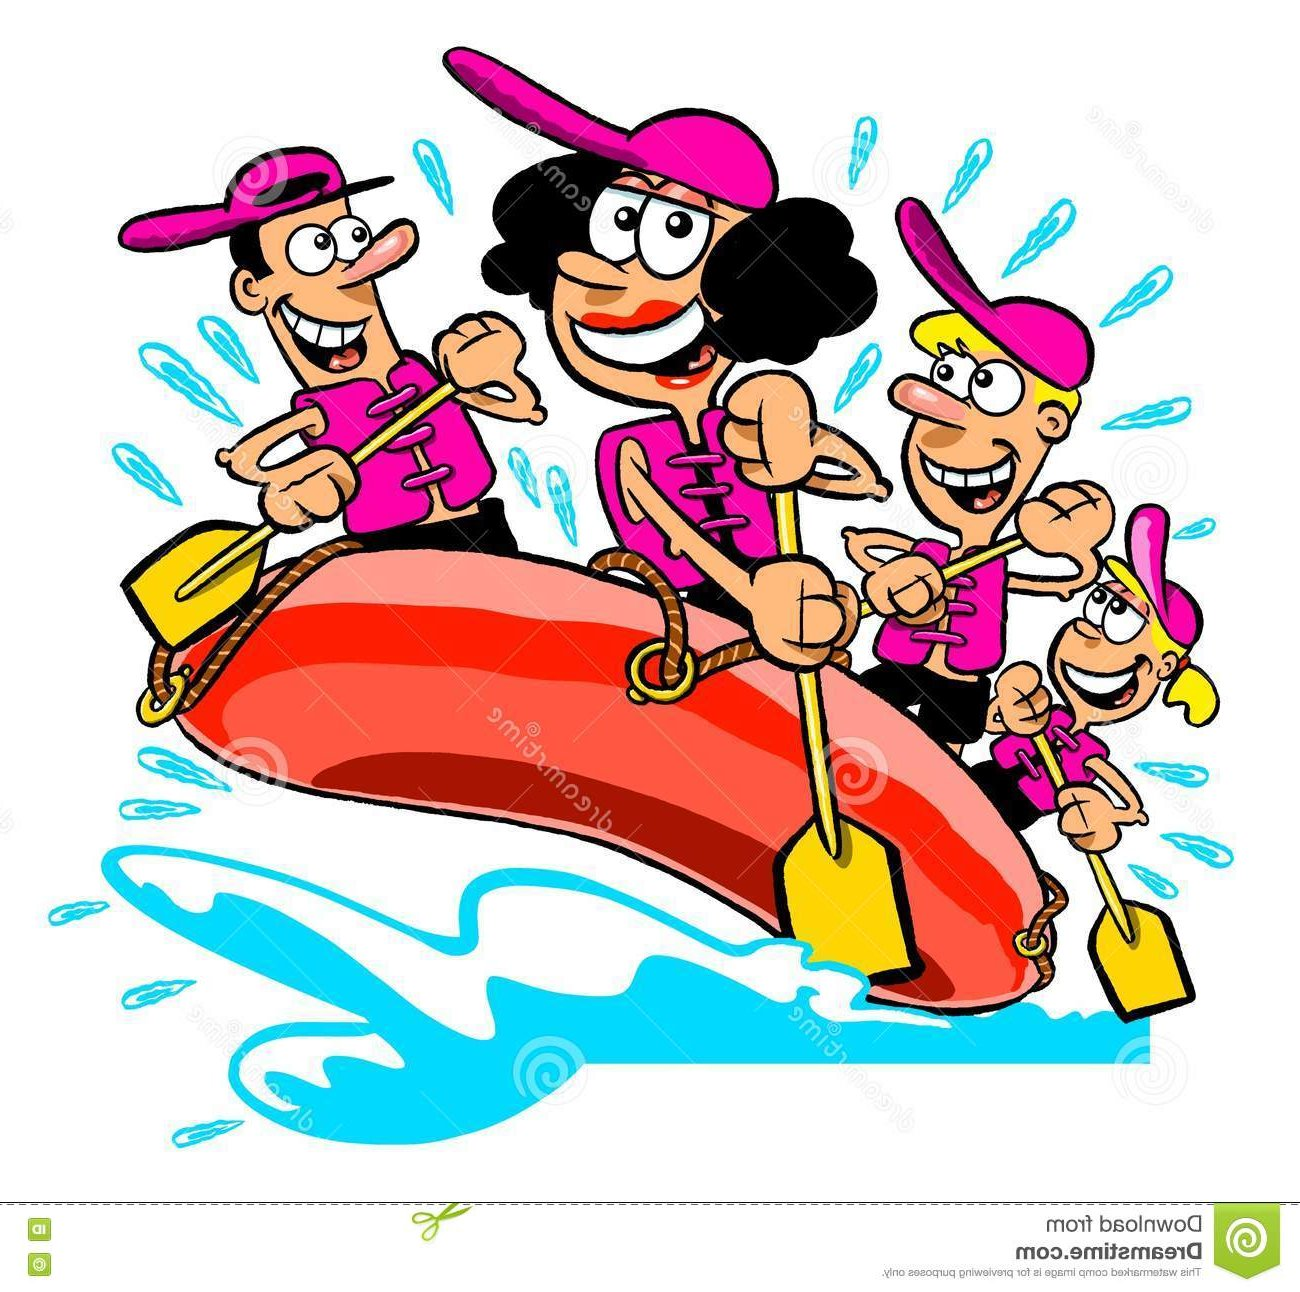 White water rafting image clipart vector royalty free stock Whitewater Rafting Cliparts-Vector - Making-The-Web.com vector royalty free stock